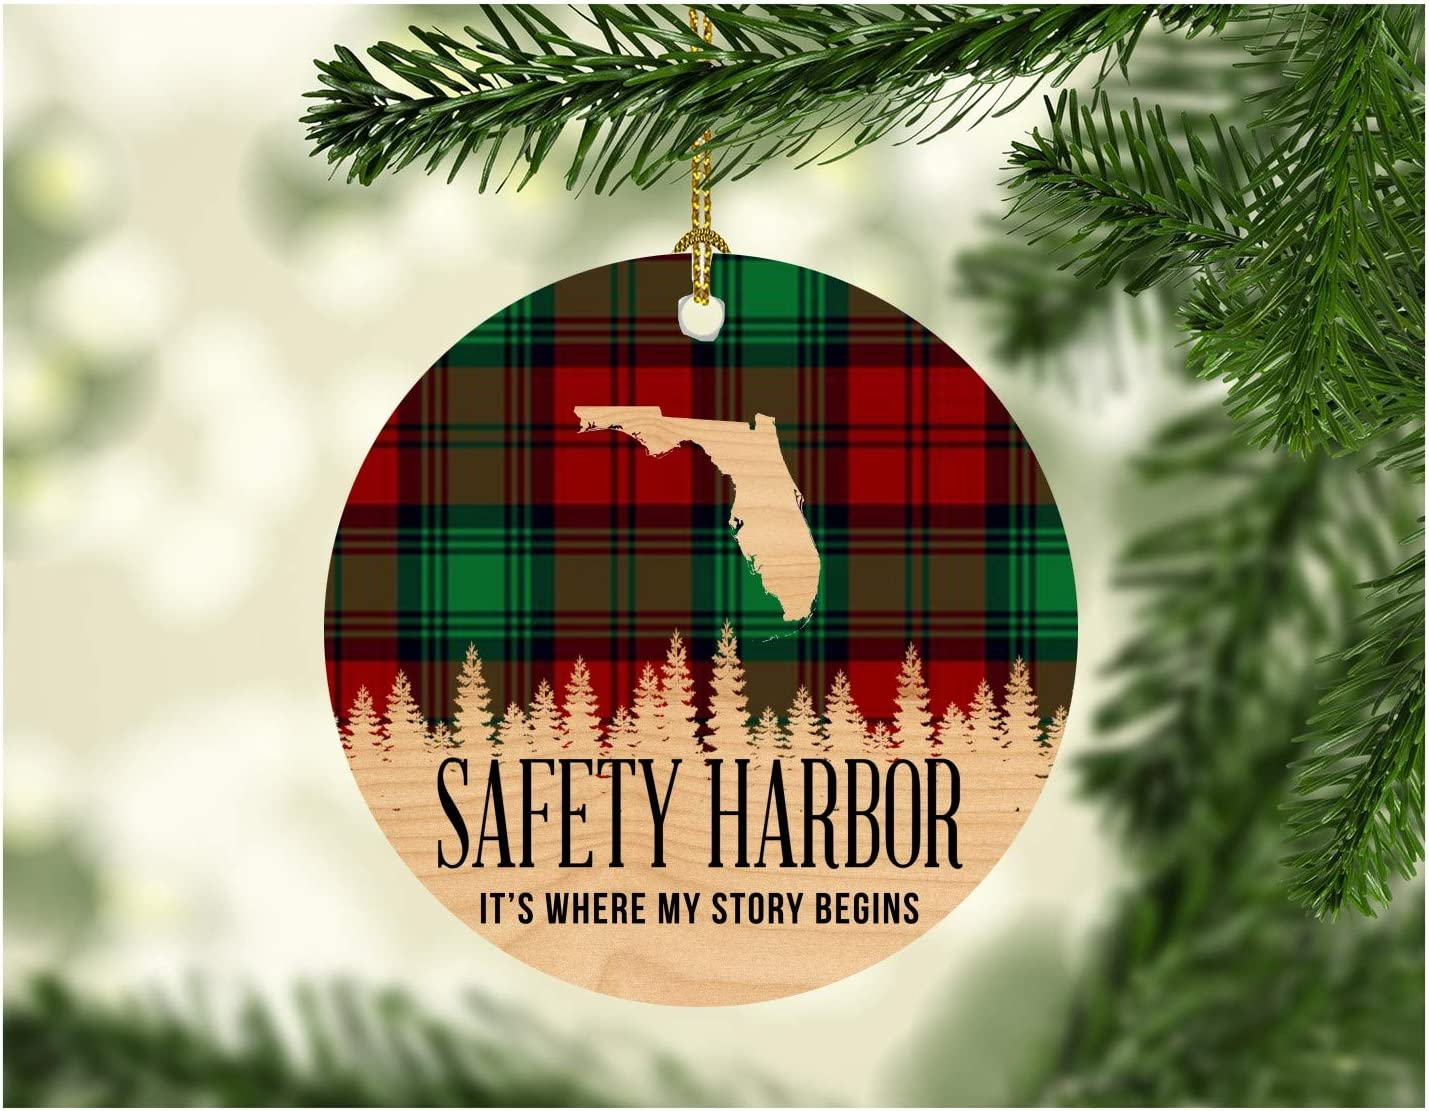 Christmas Decorations Ornaments 2020 Safety Harbor Florida It's Where My Story Begin Xmas Present Funny Giff for Family New Home Gift Xmas Tree Decoration 3